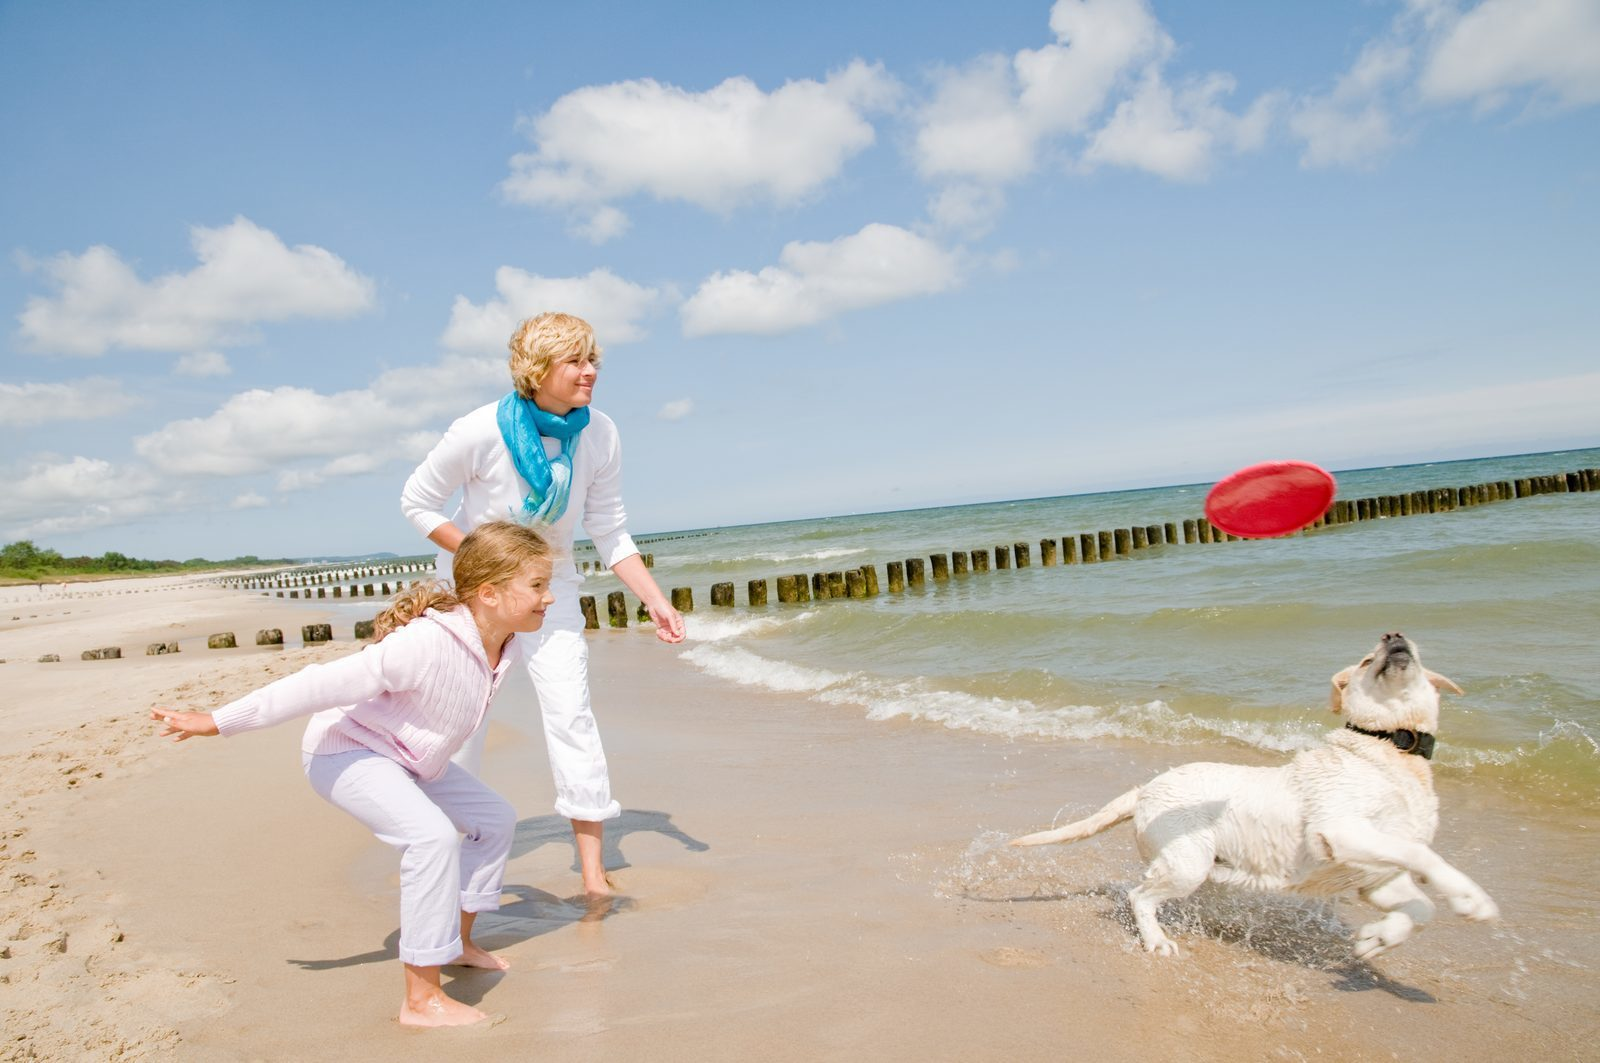 Chauffage Exterieur Gaz Occasion Topparken Holiday Parks In Nl True Enjoyment From Head To Toe